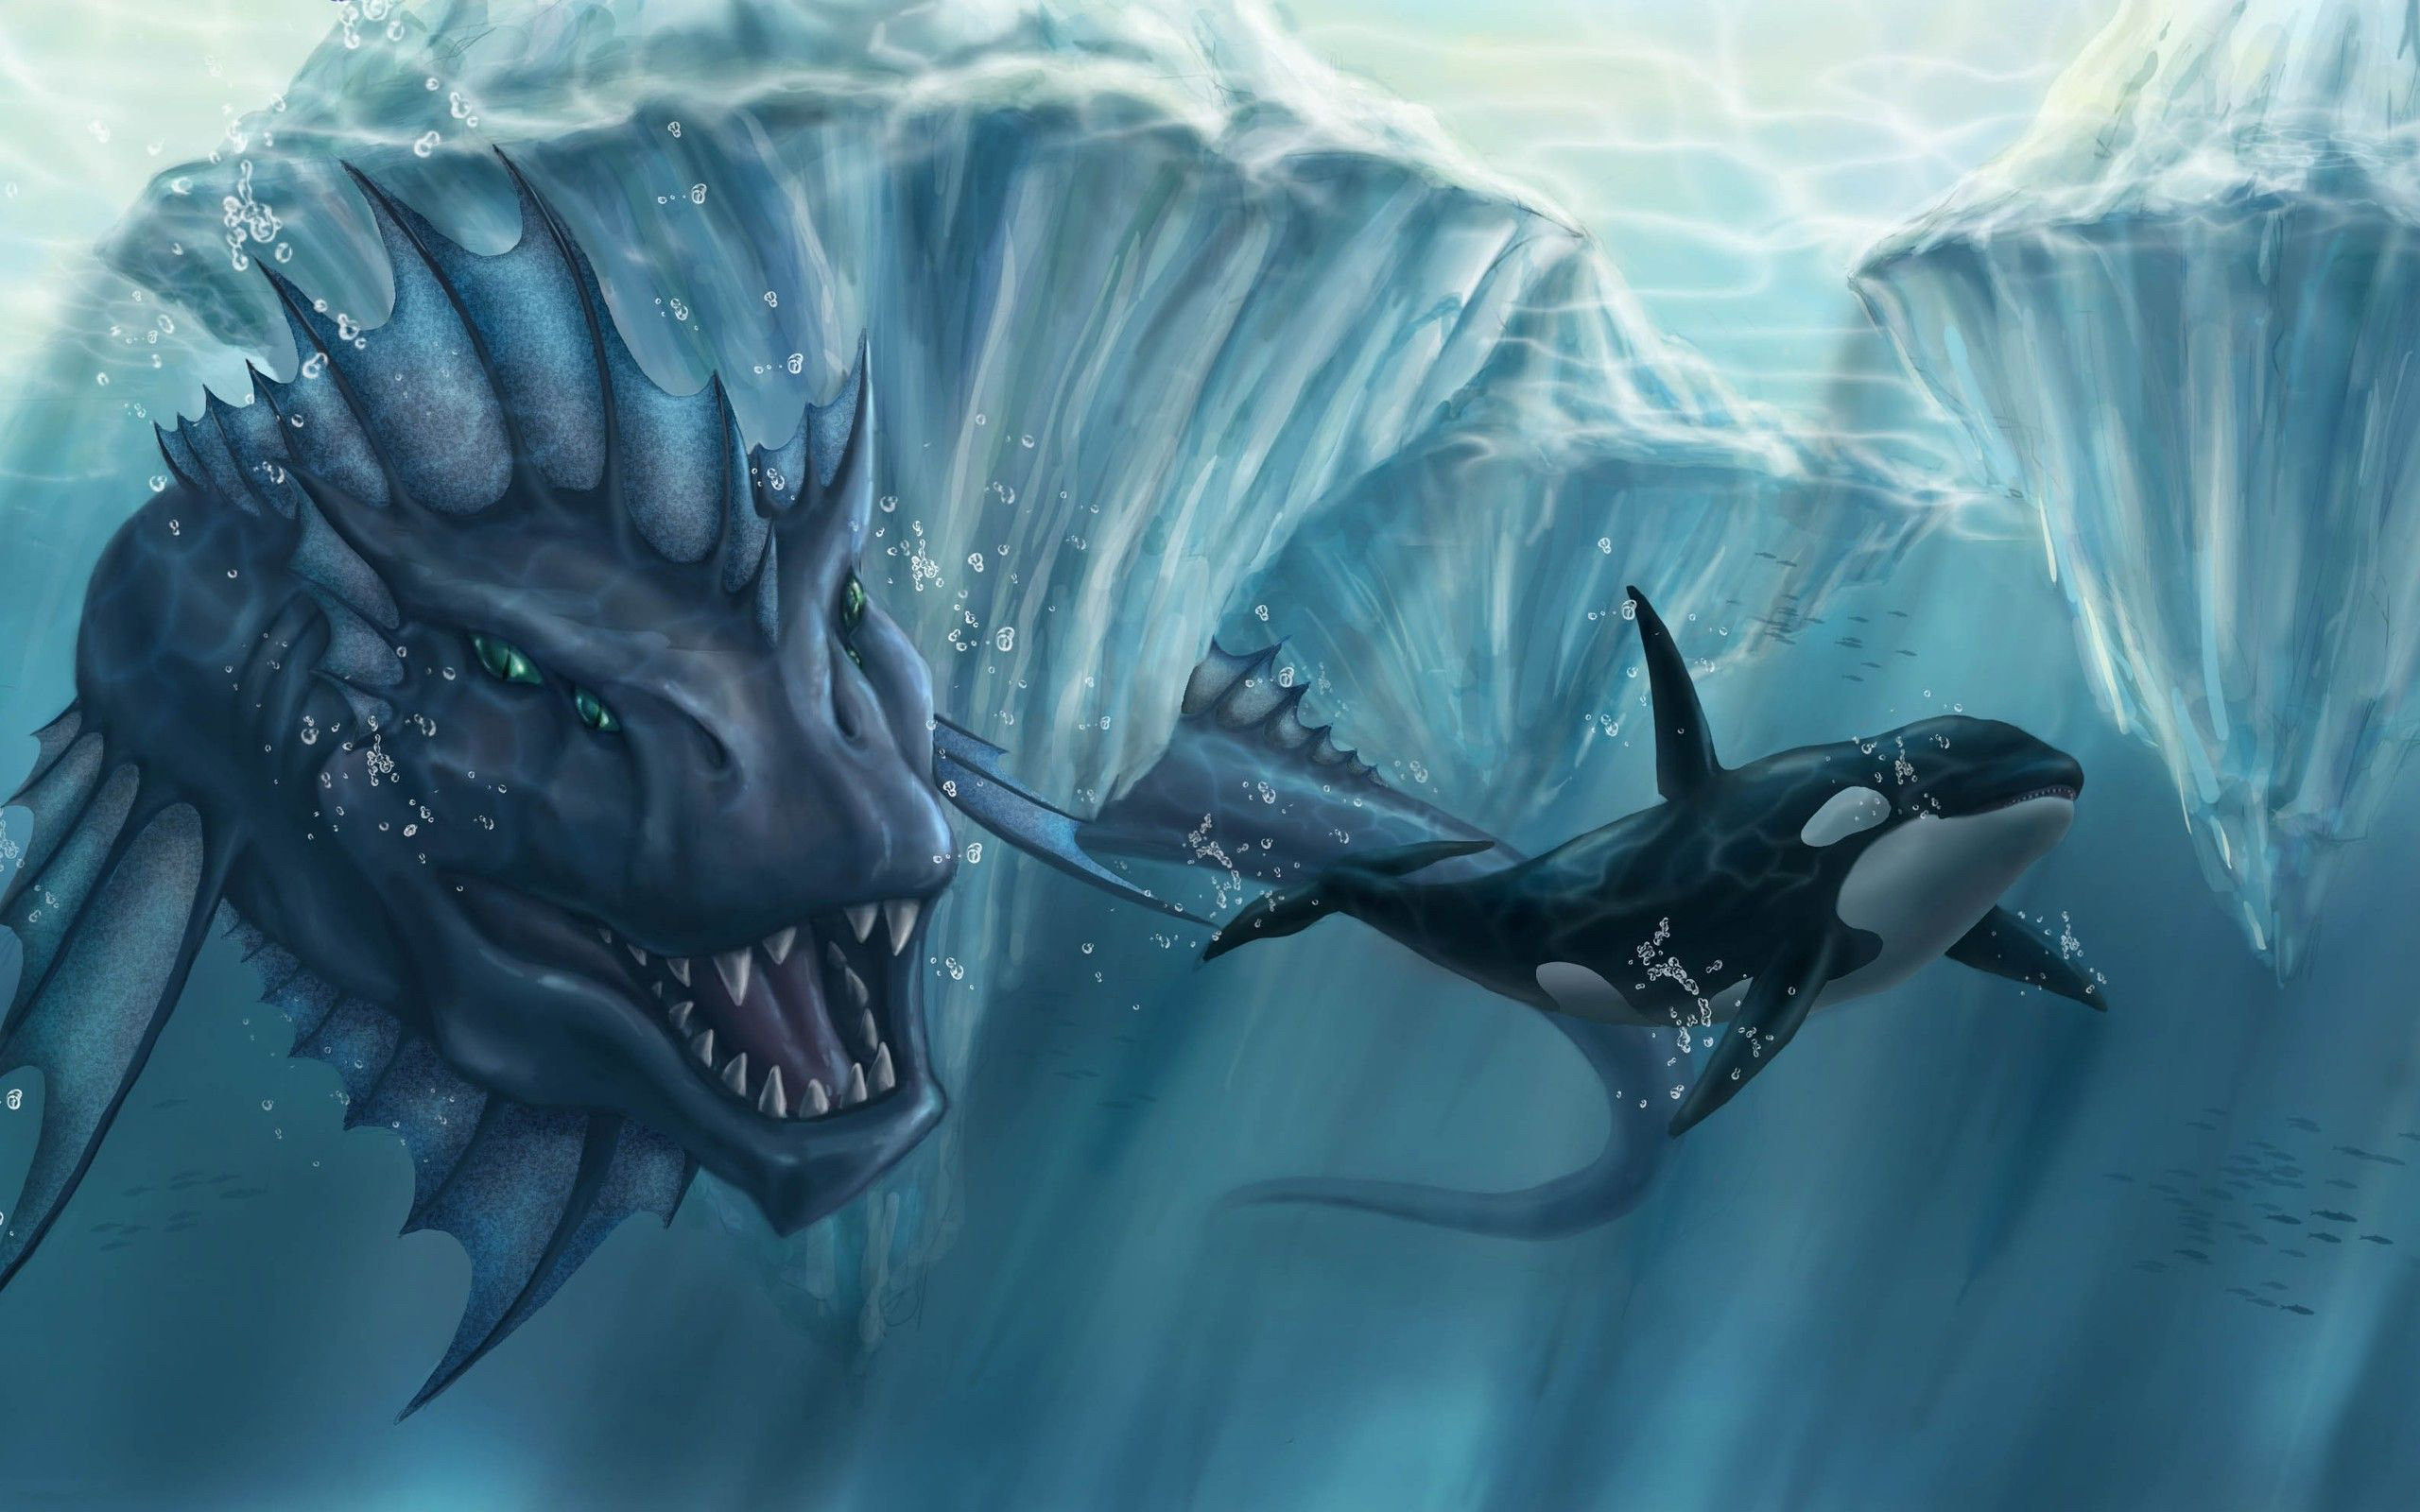 2560x1600 Sea monster chasing the killer whale, orca, fantasy,  HD .